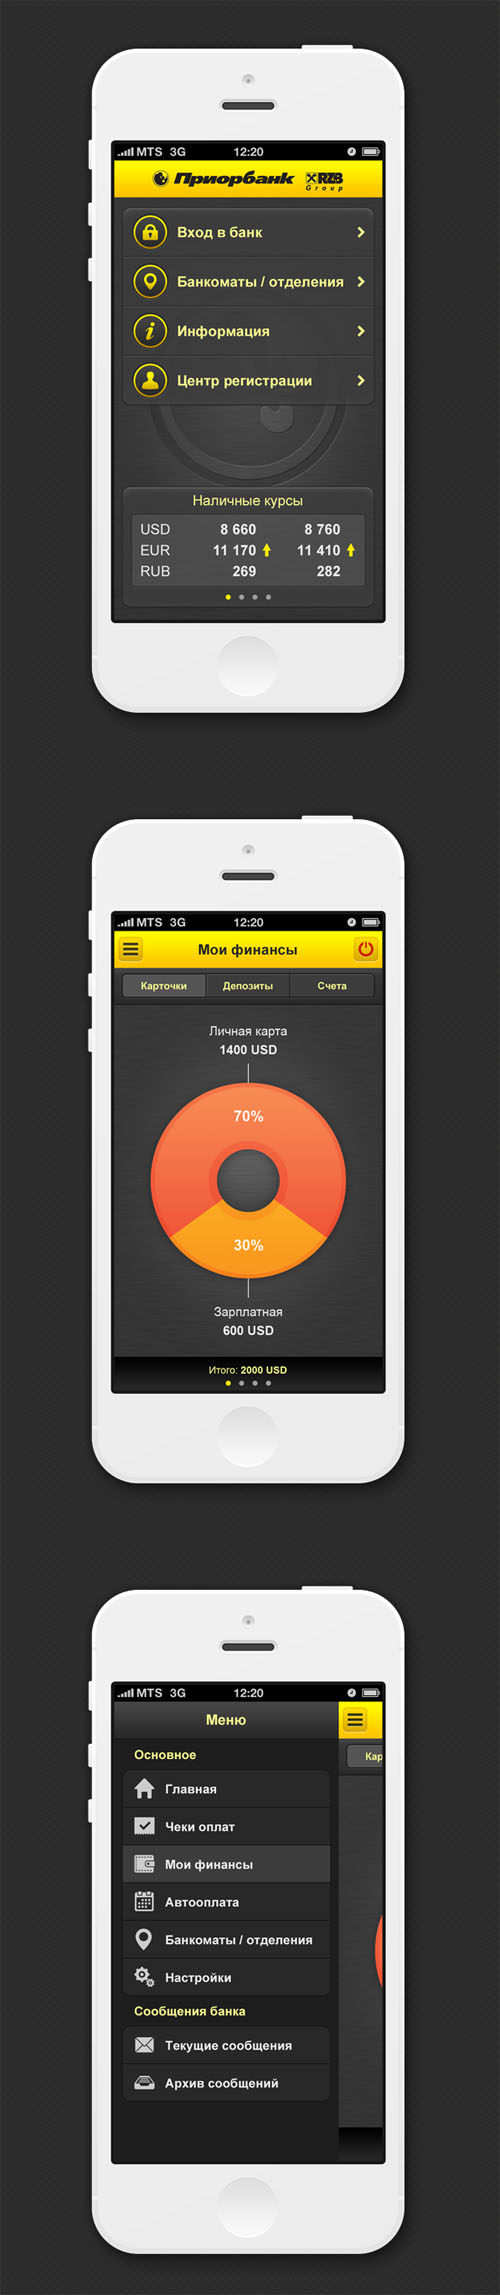 GUI for Mobile App UI UX Design for Inspiration